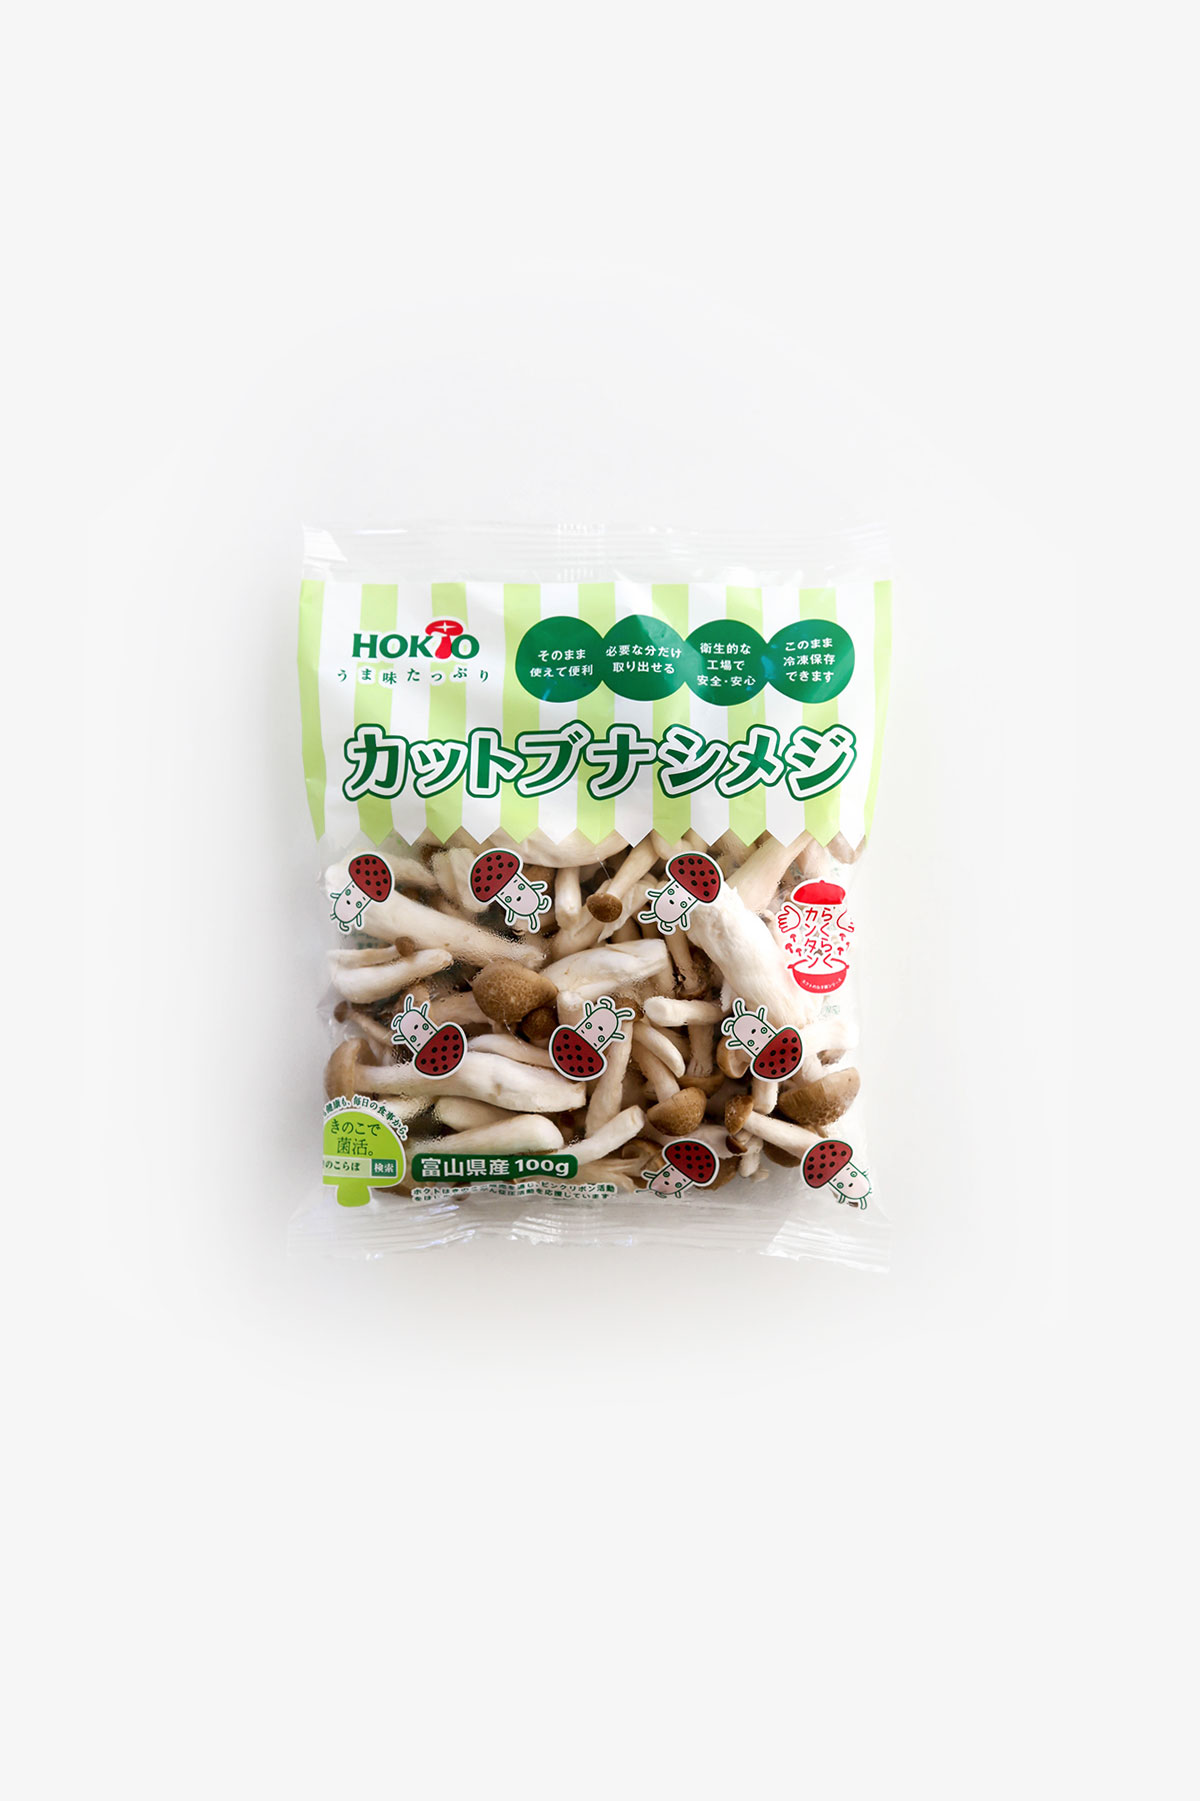 Japanese mushrooms and keto or low carb.